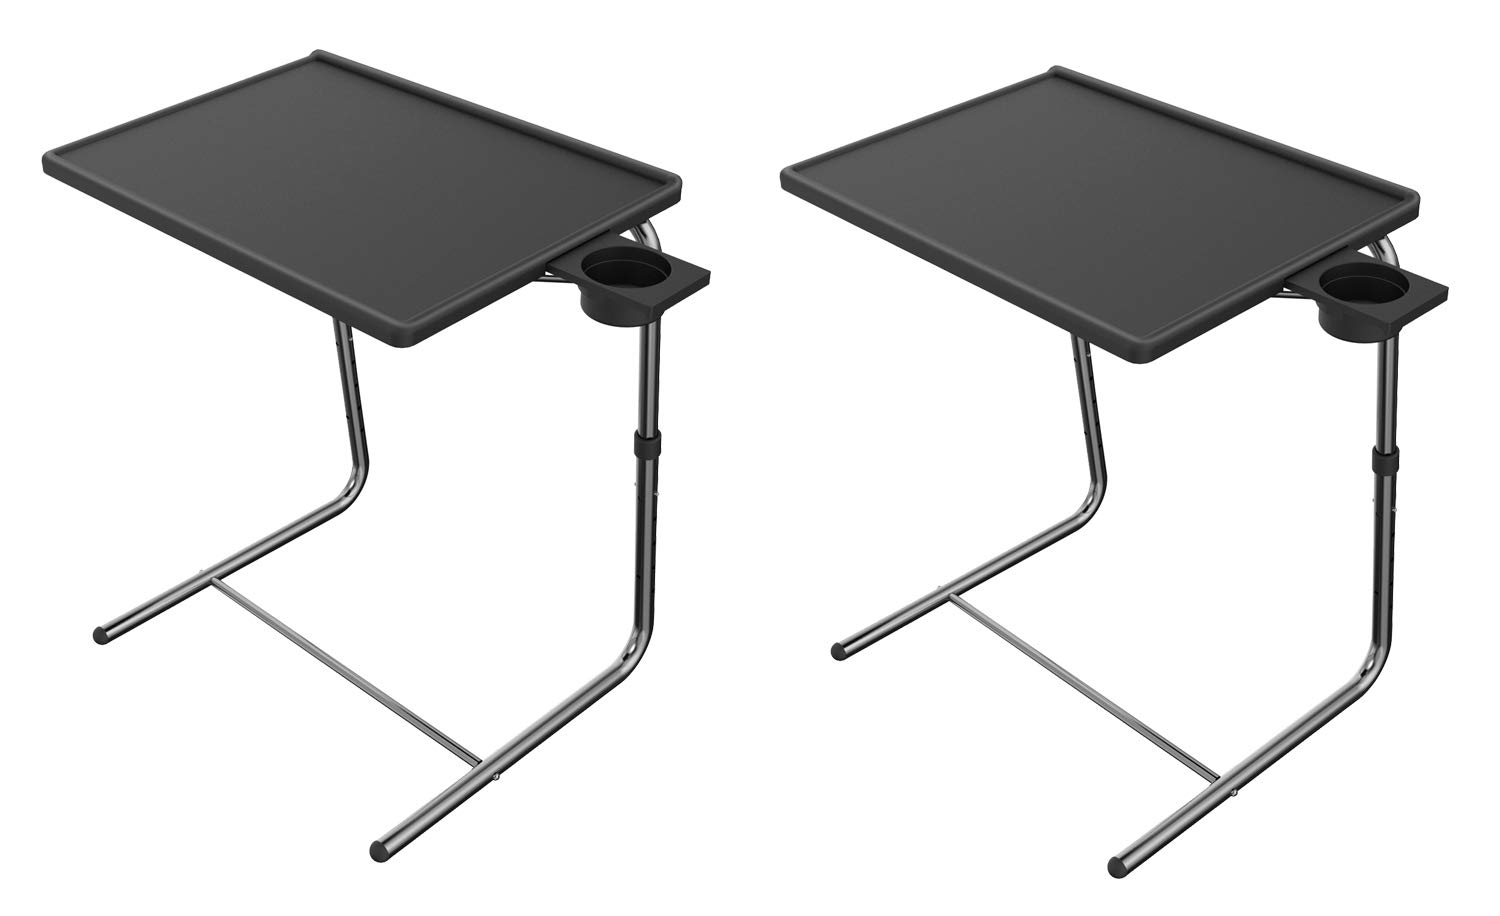 Adjustable TV Tray Table - TV Dinner Tray on Bed & Sofa, Comfortable Folding Table with 6 Height & 3 Tilt Angle Adjustments by HUANUO (2 pack) by HUANUO